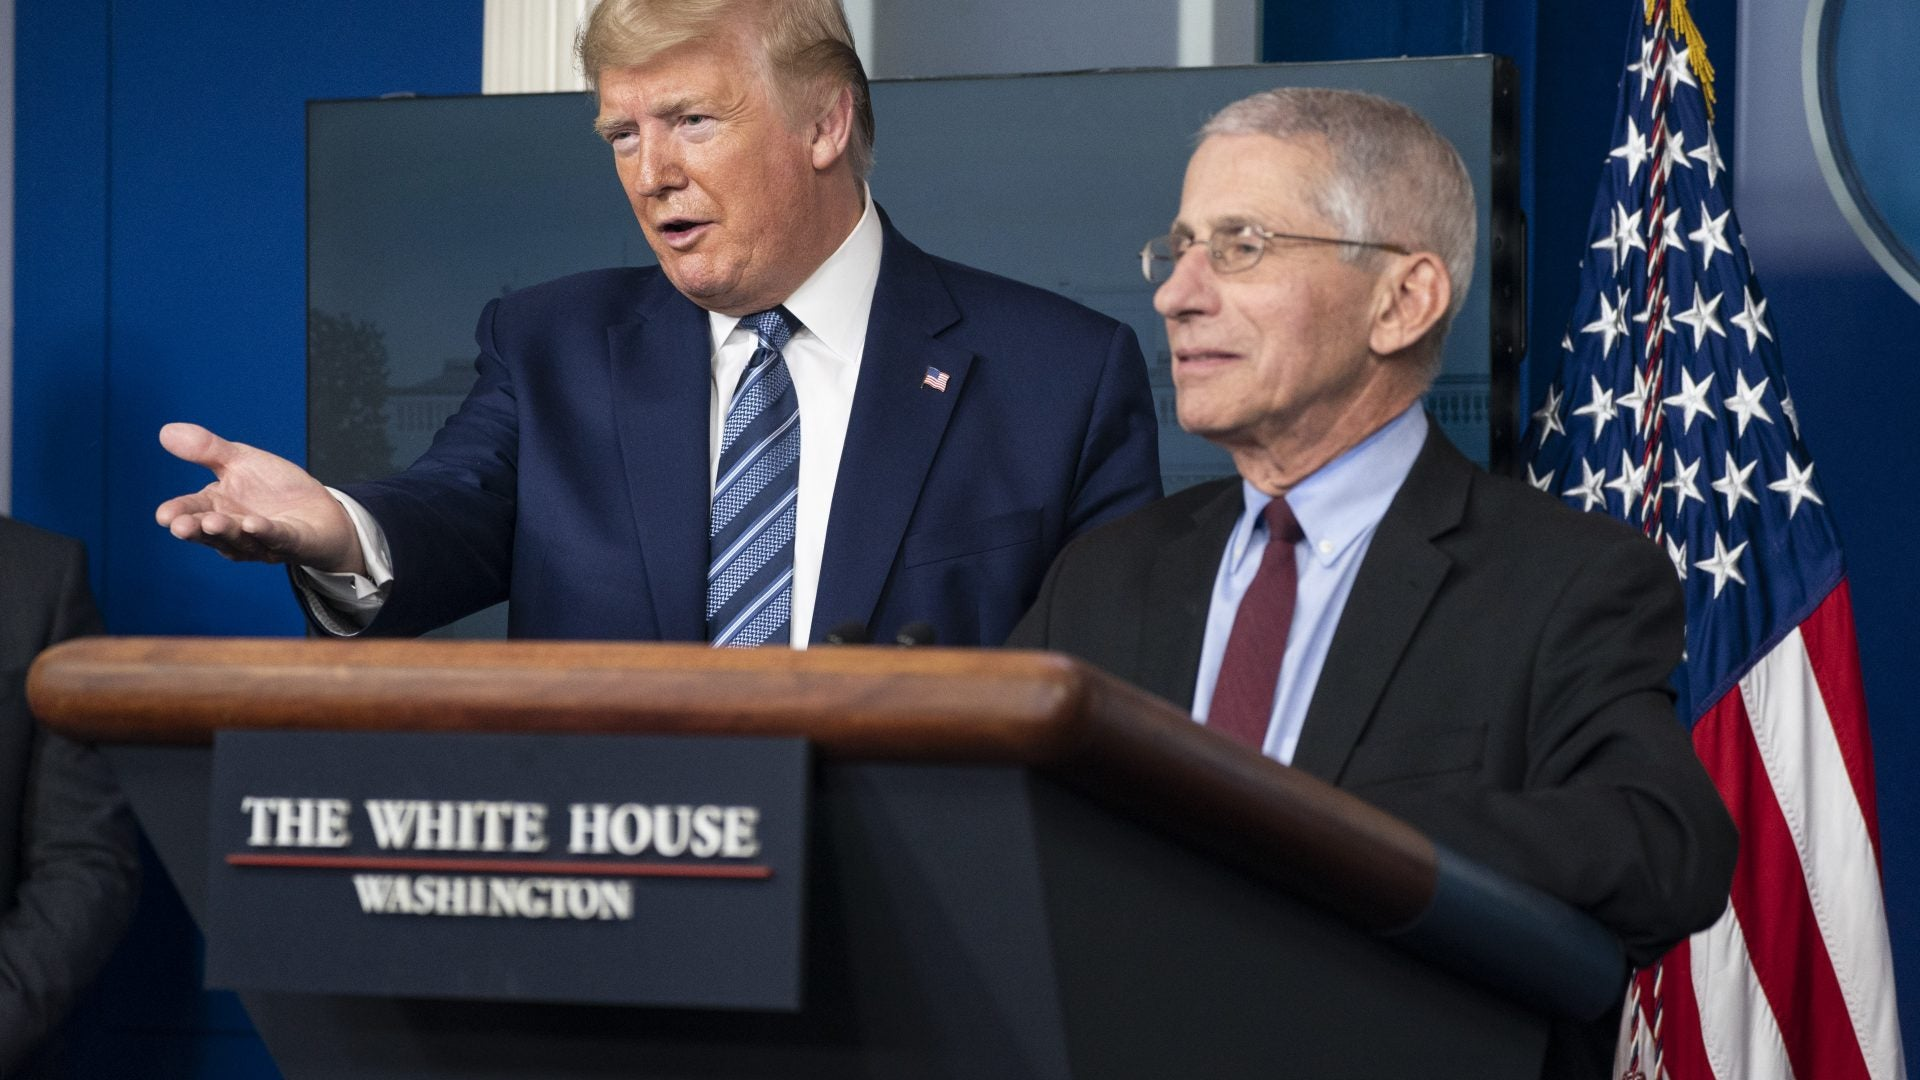 Trump Keeps On Promoting The Use of Hydroxychloroquine, Despite Expert Advice